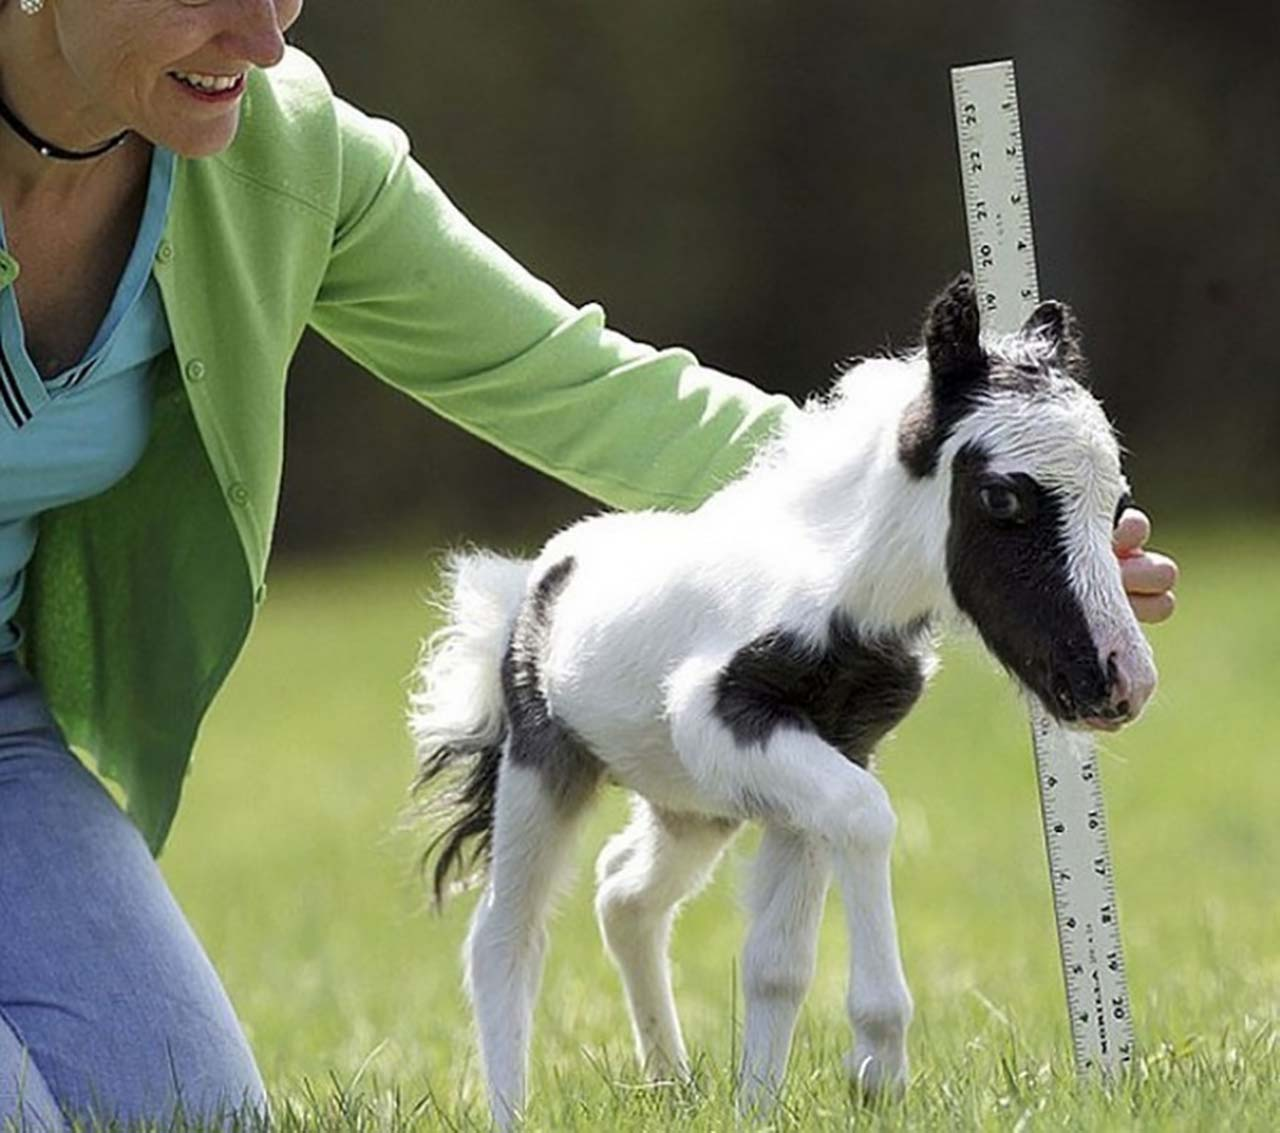 27 Adorable & Tiny Animals That Are Too Cute To Handle #17: Miniature Horse